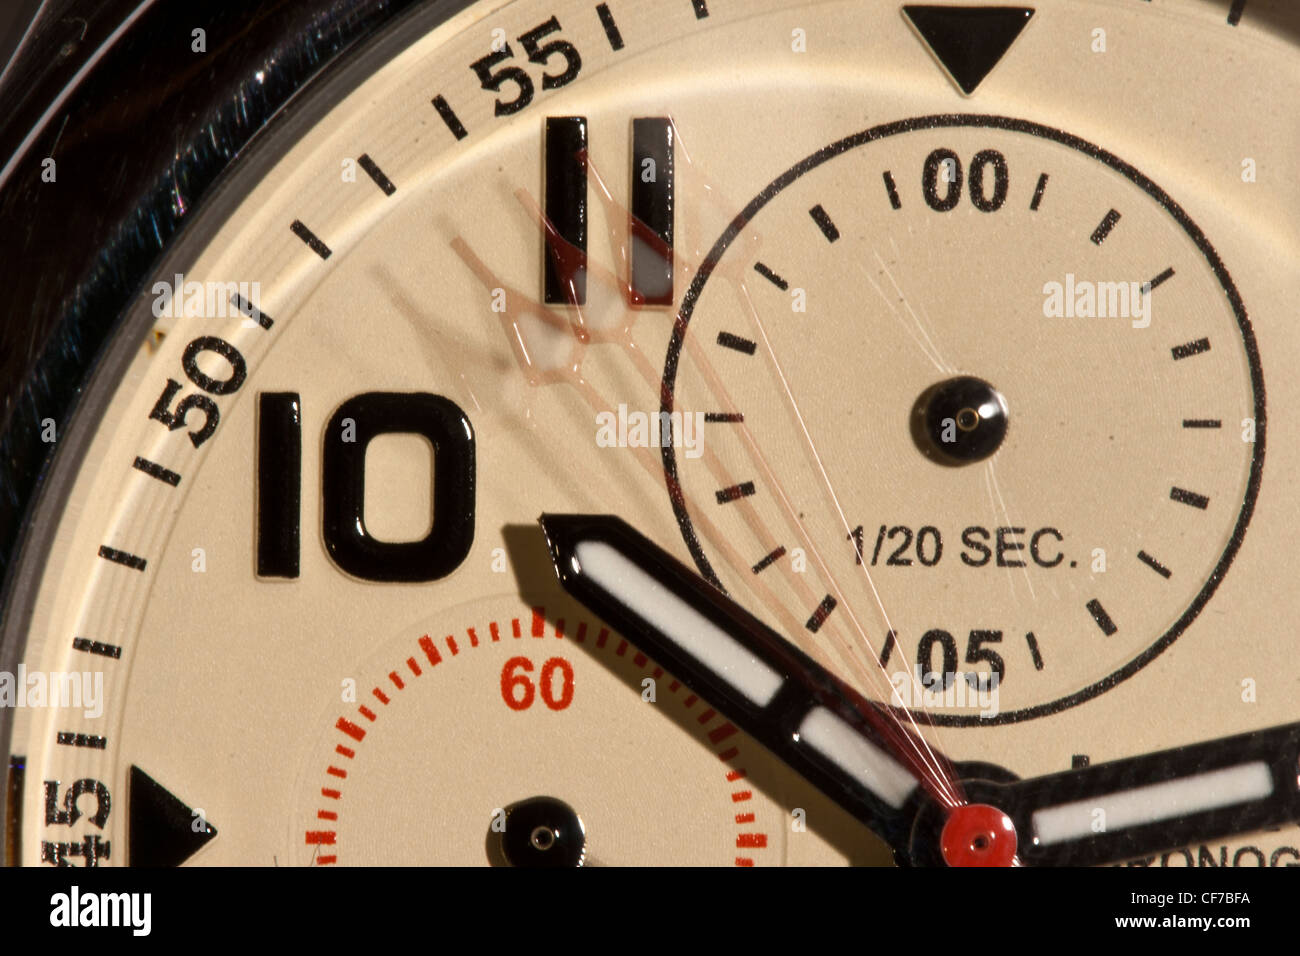 A close-up photo of a watch face over a three second exposure. - Stock Image